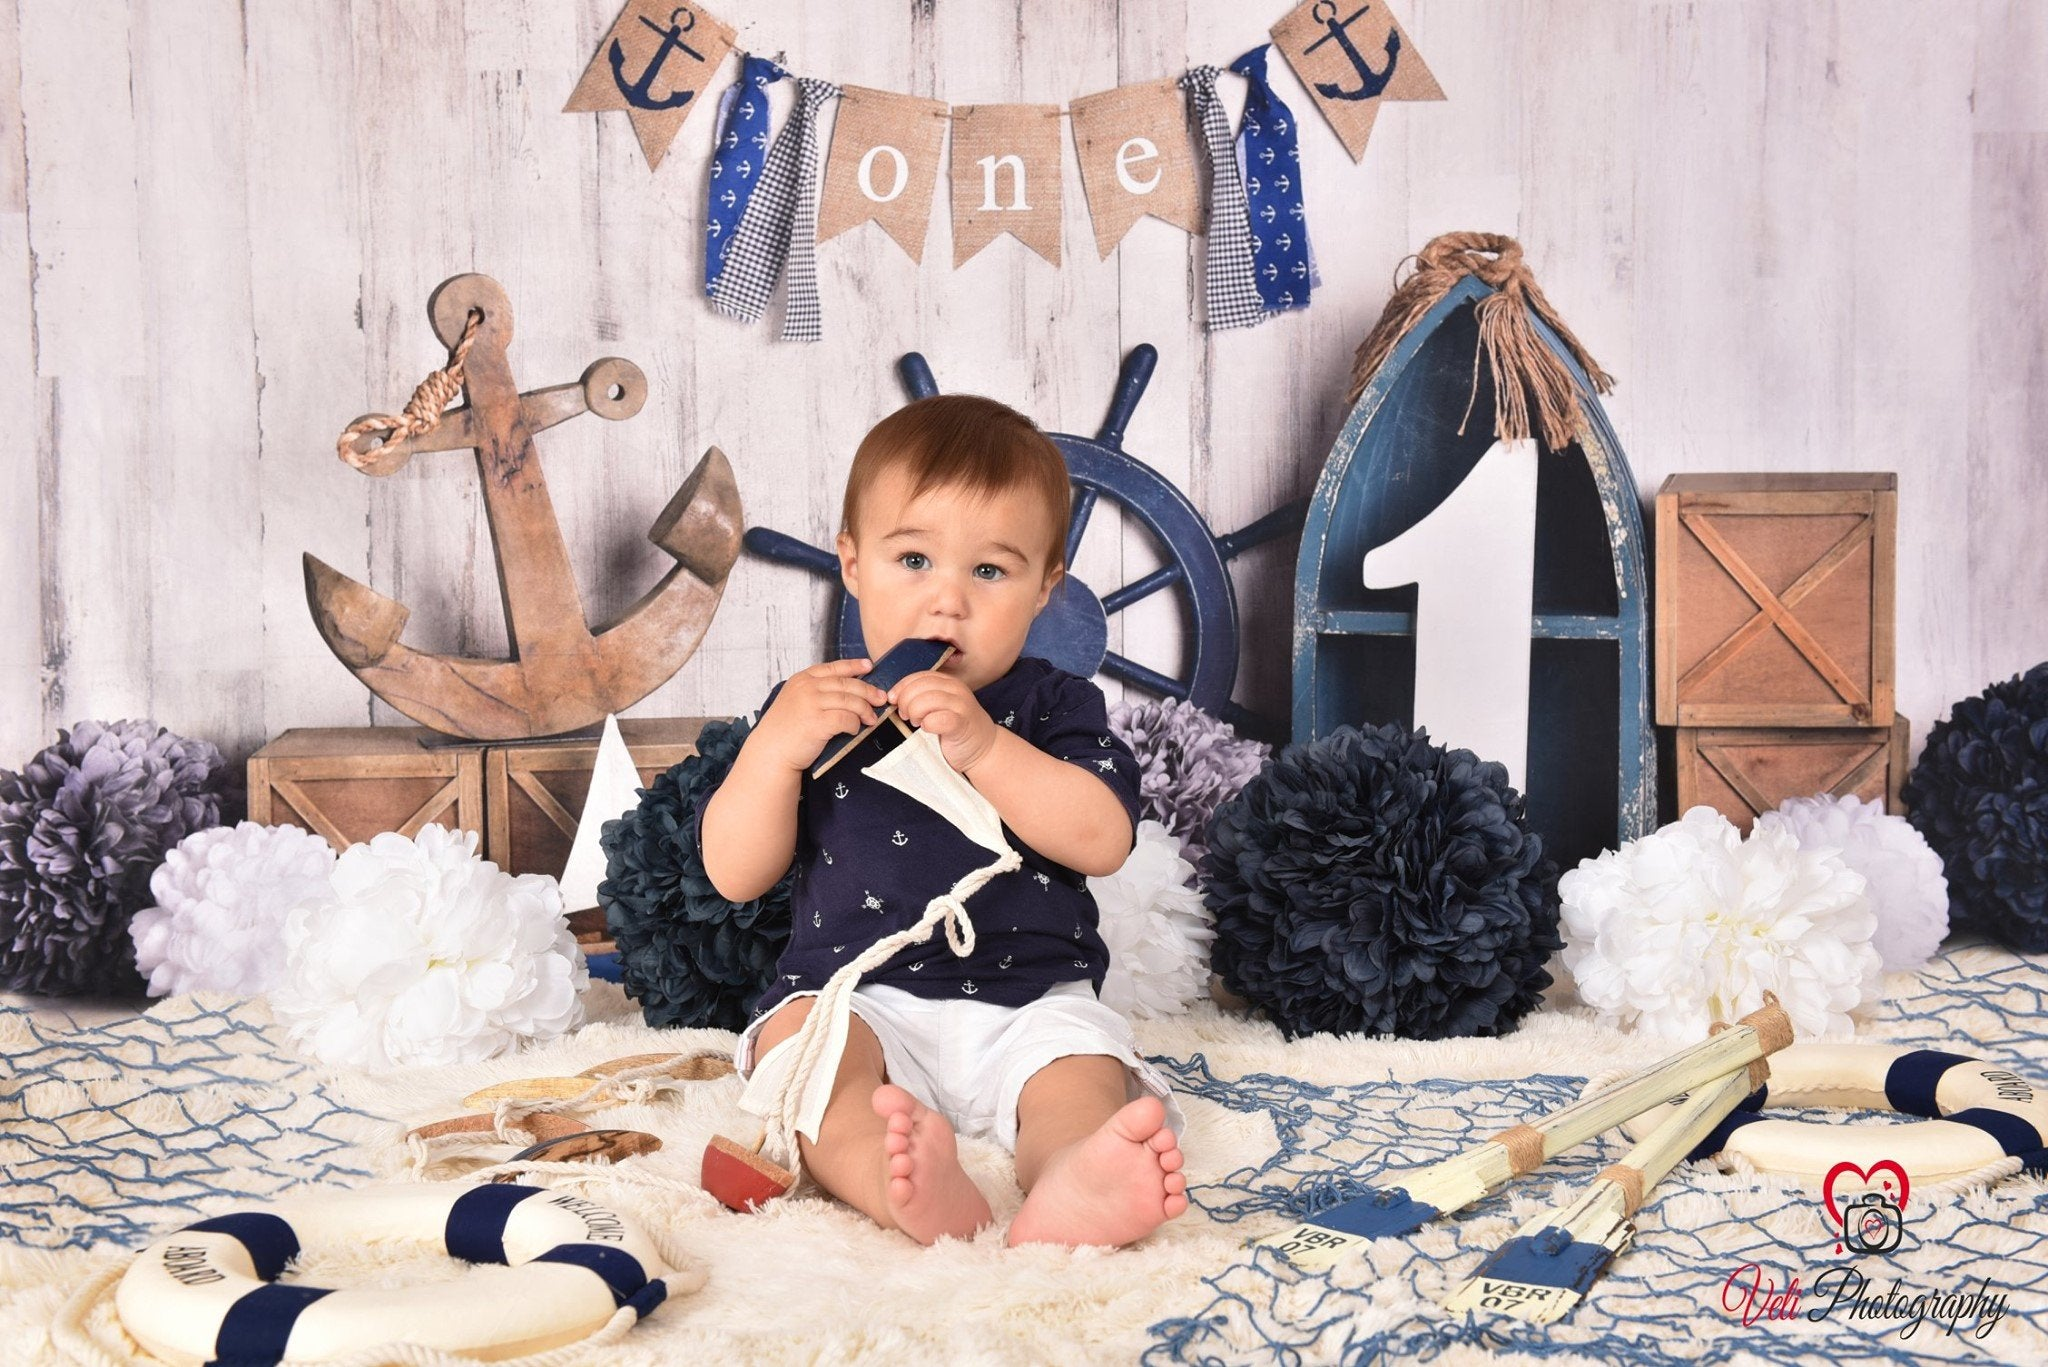 Load image into Gallery viewer, Kate Rudder Anchor Sailor Children Backdrop for Summer cake smash Designed by Mandy Ringe Photography